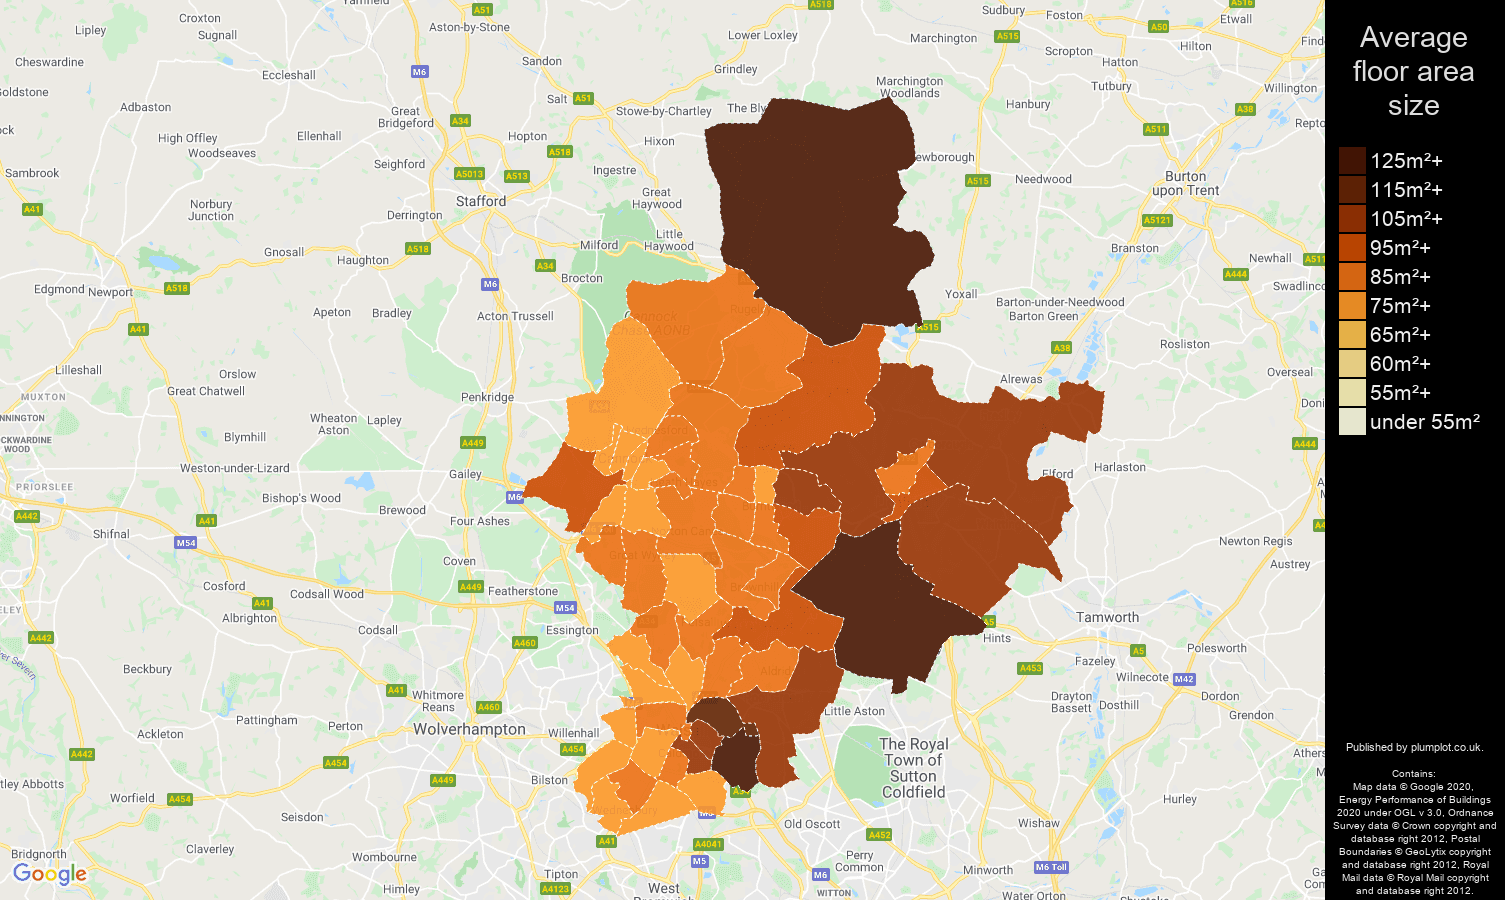 Walsall map of average floor area size of houses